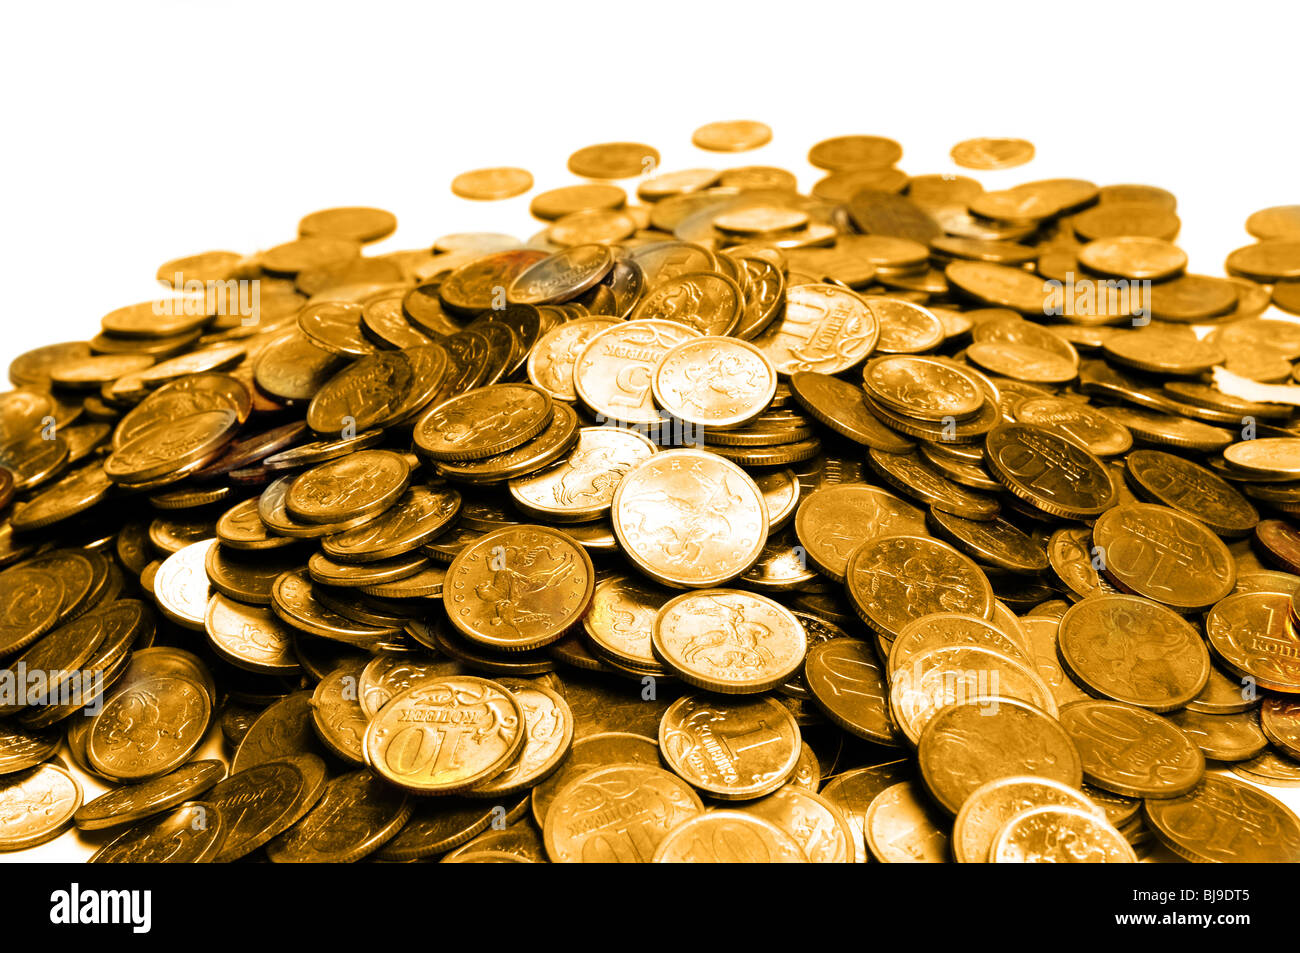 Pile of golden coin over white - Stock Image